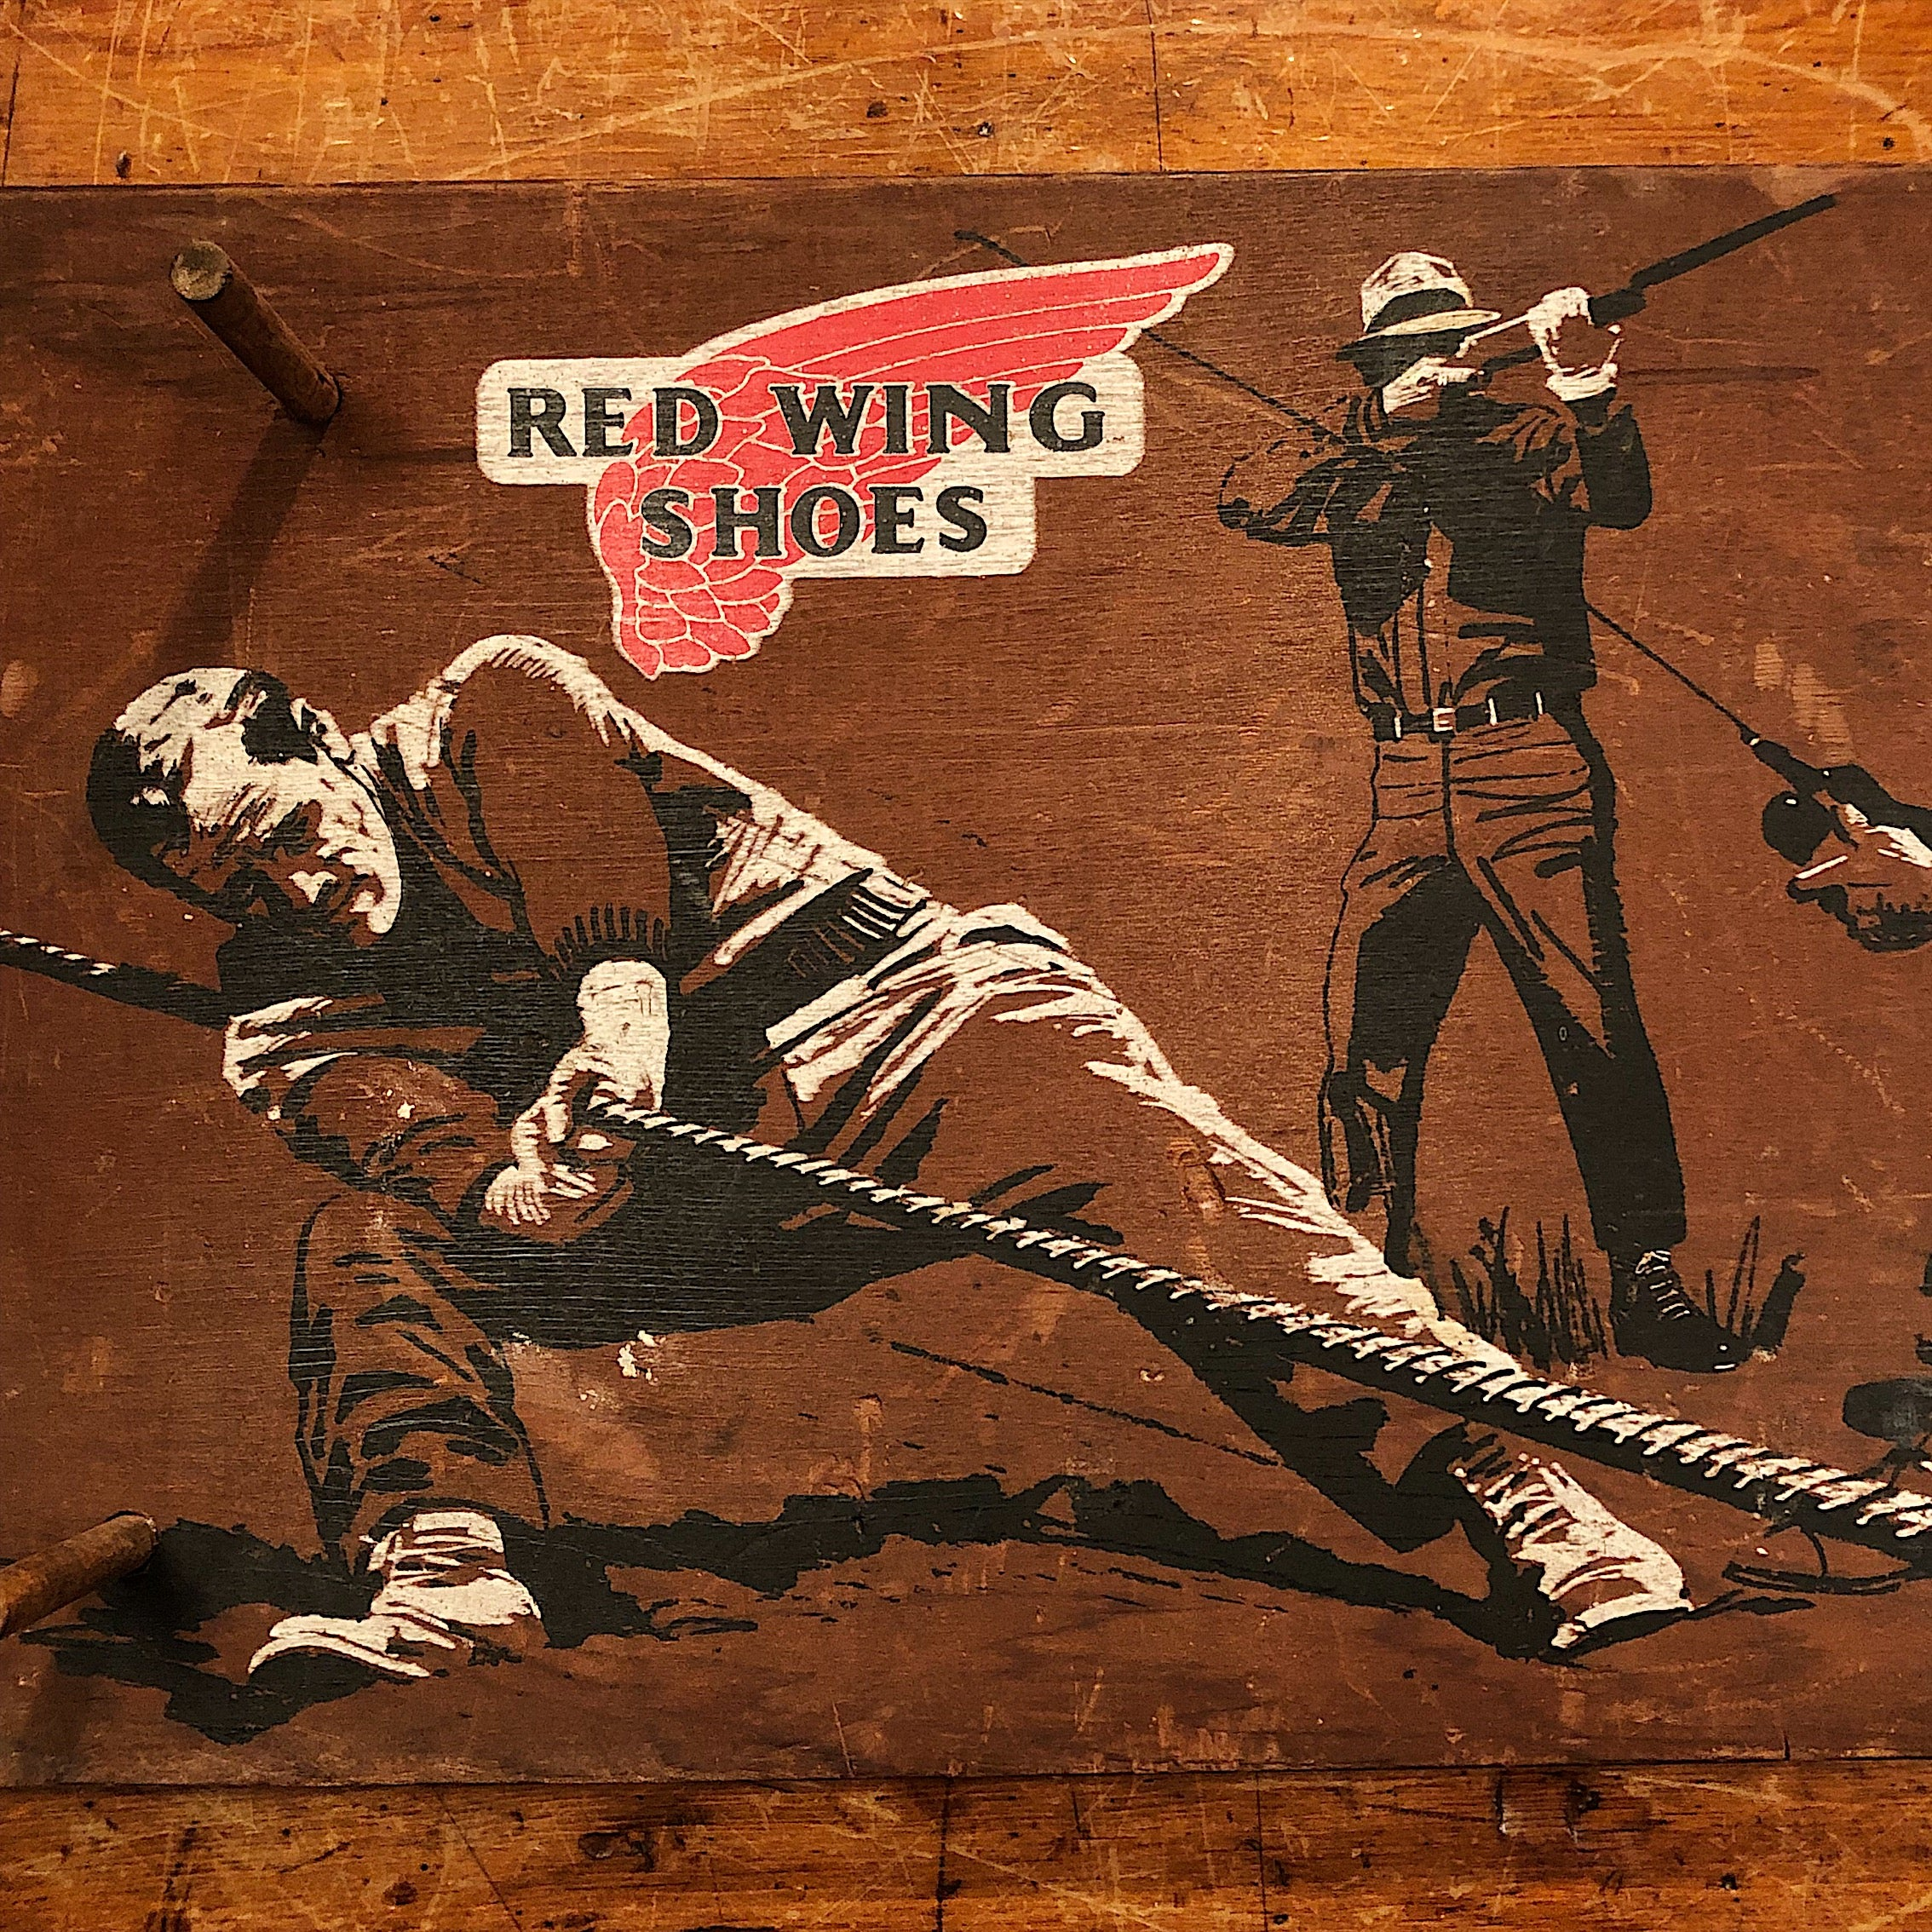 Vintage Red Wing Shoes Store Display Sign - 1960s - Print on Wood Peg Hanger - Workwear - Fishing Hunting Working - Rare Advertising Piece